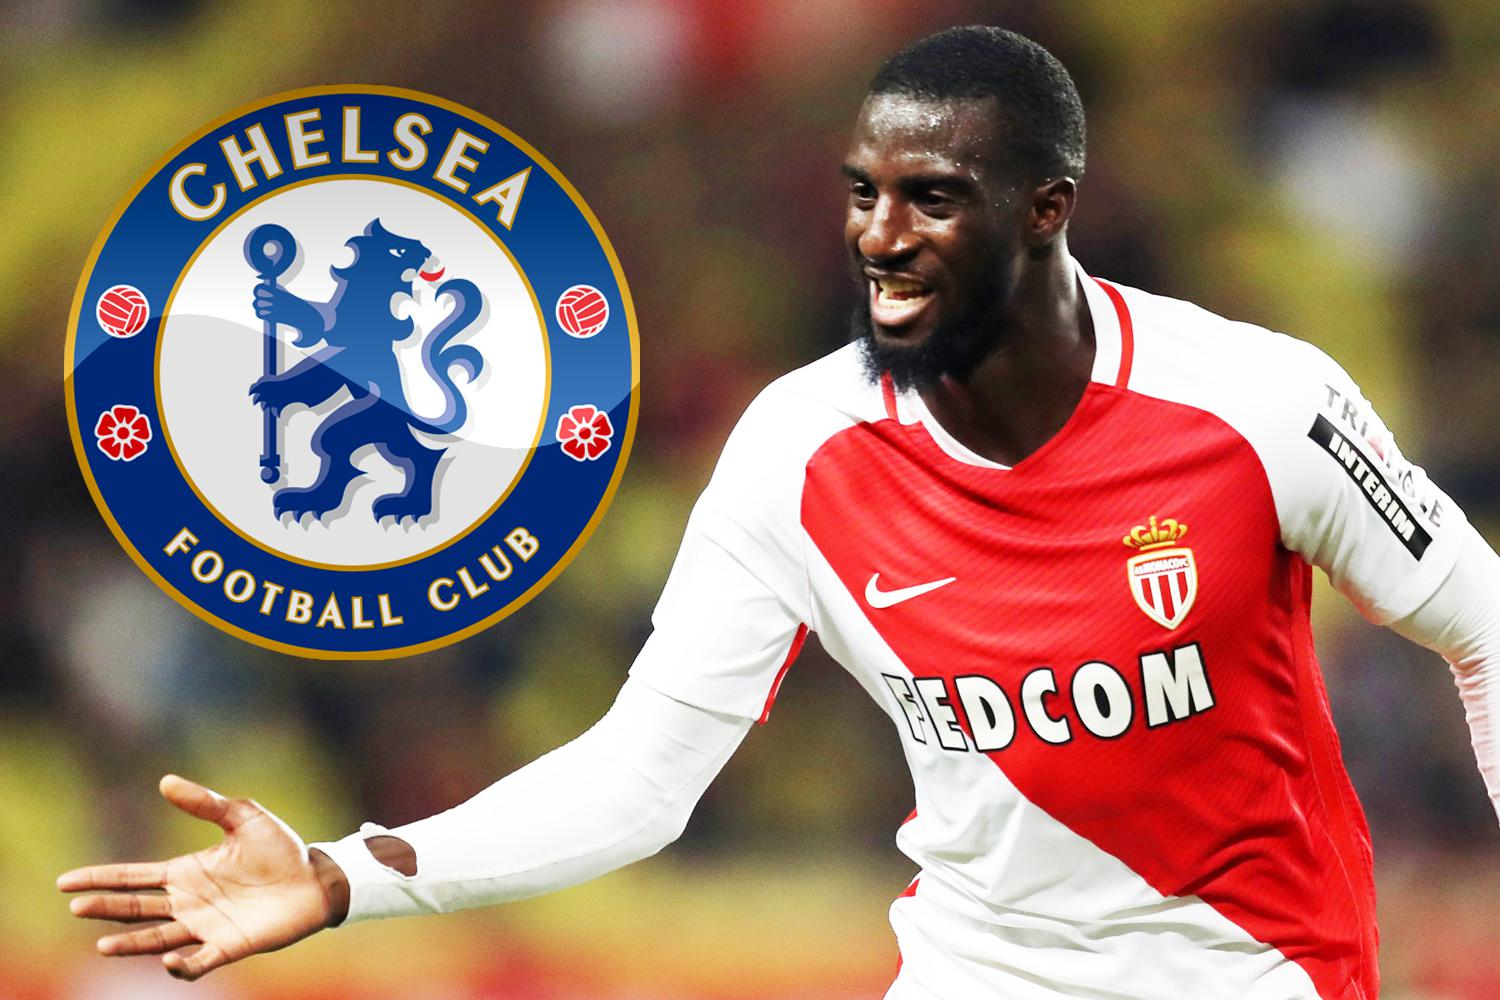 Chelsea agree Tiemoue Bakayoko deal worth £40million with medical